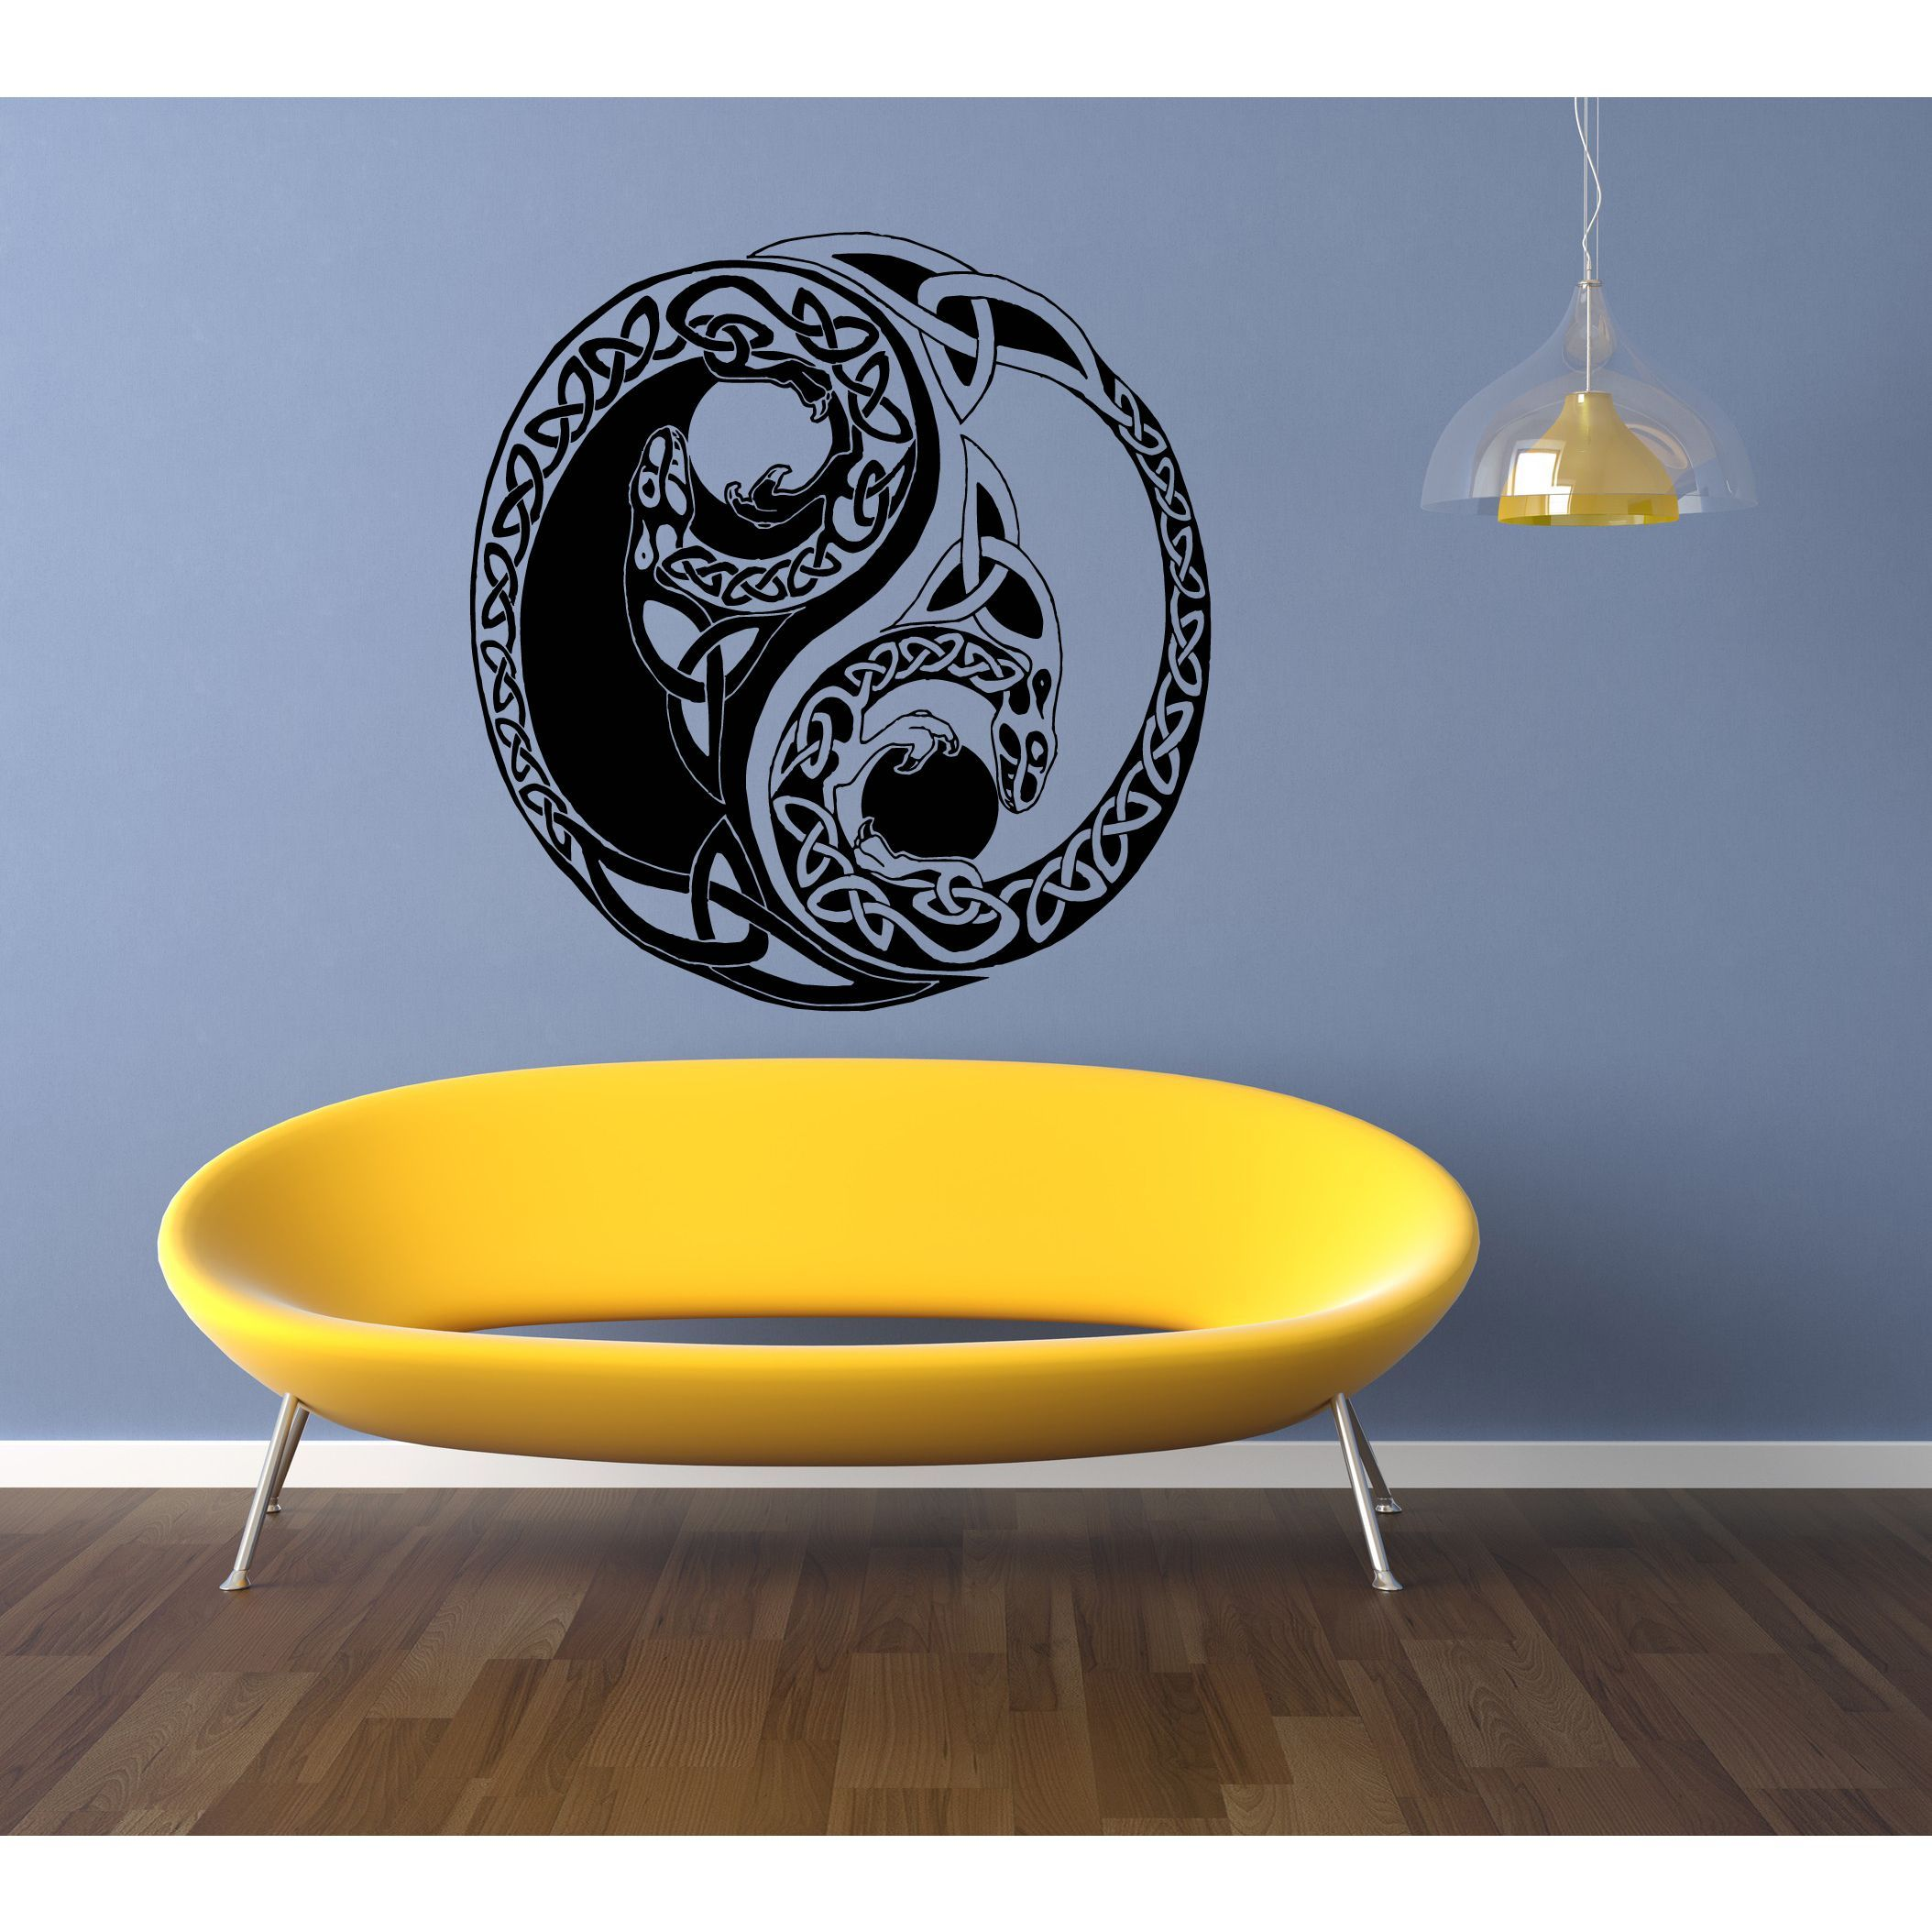 Celtic knot stylized graphical representations The Dragon Wall Art ...